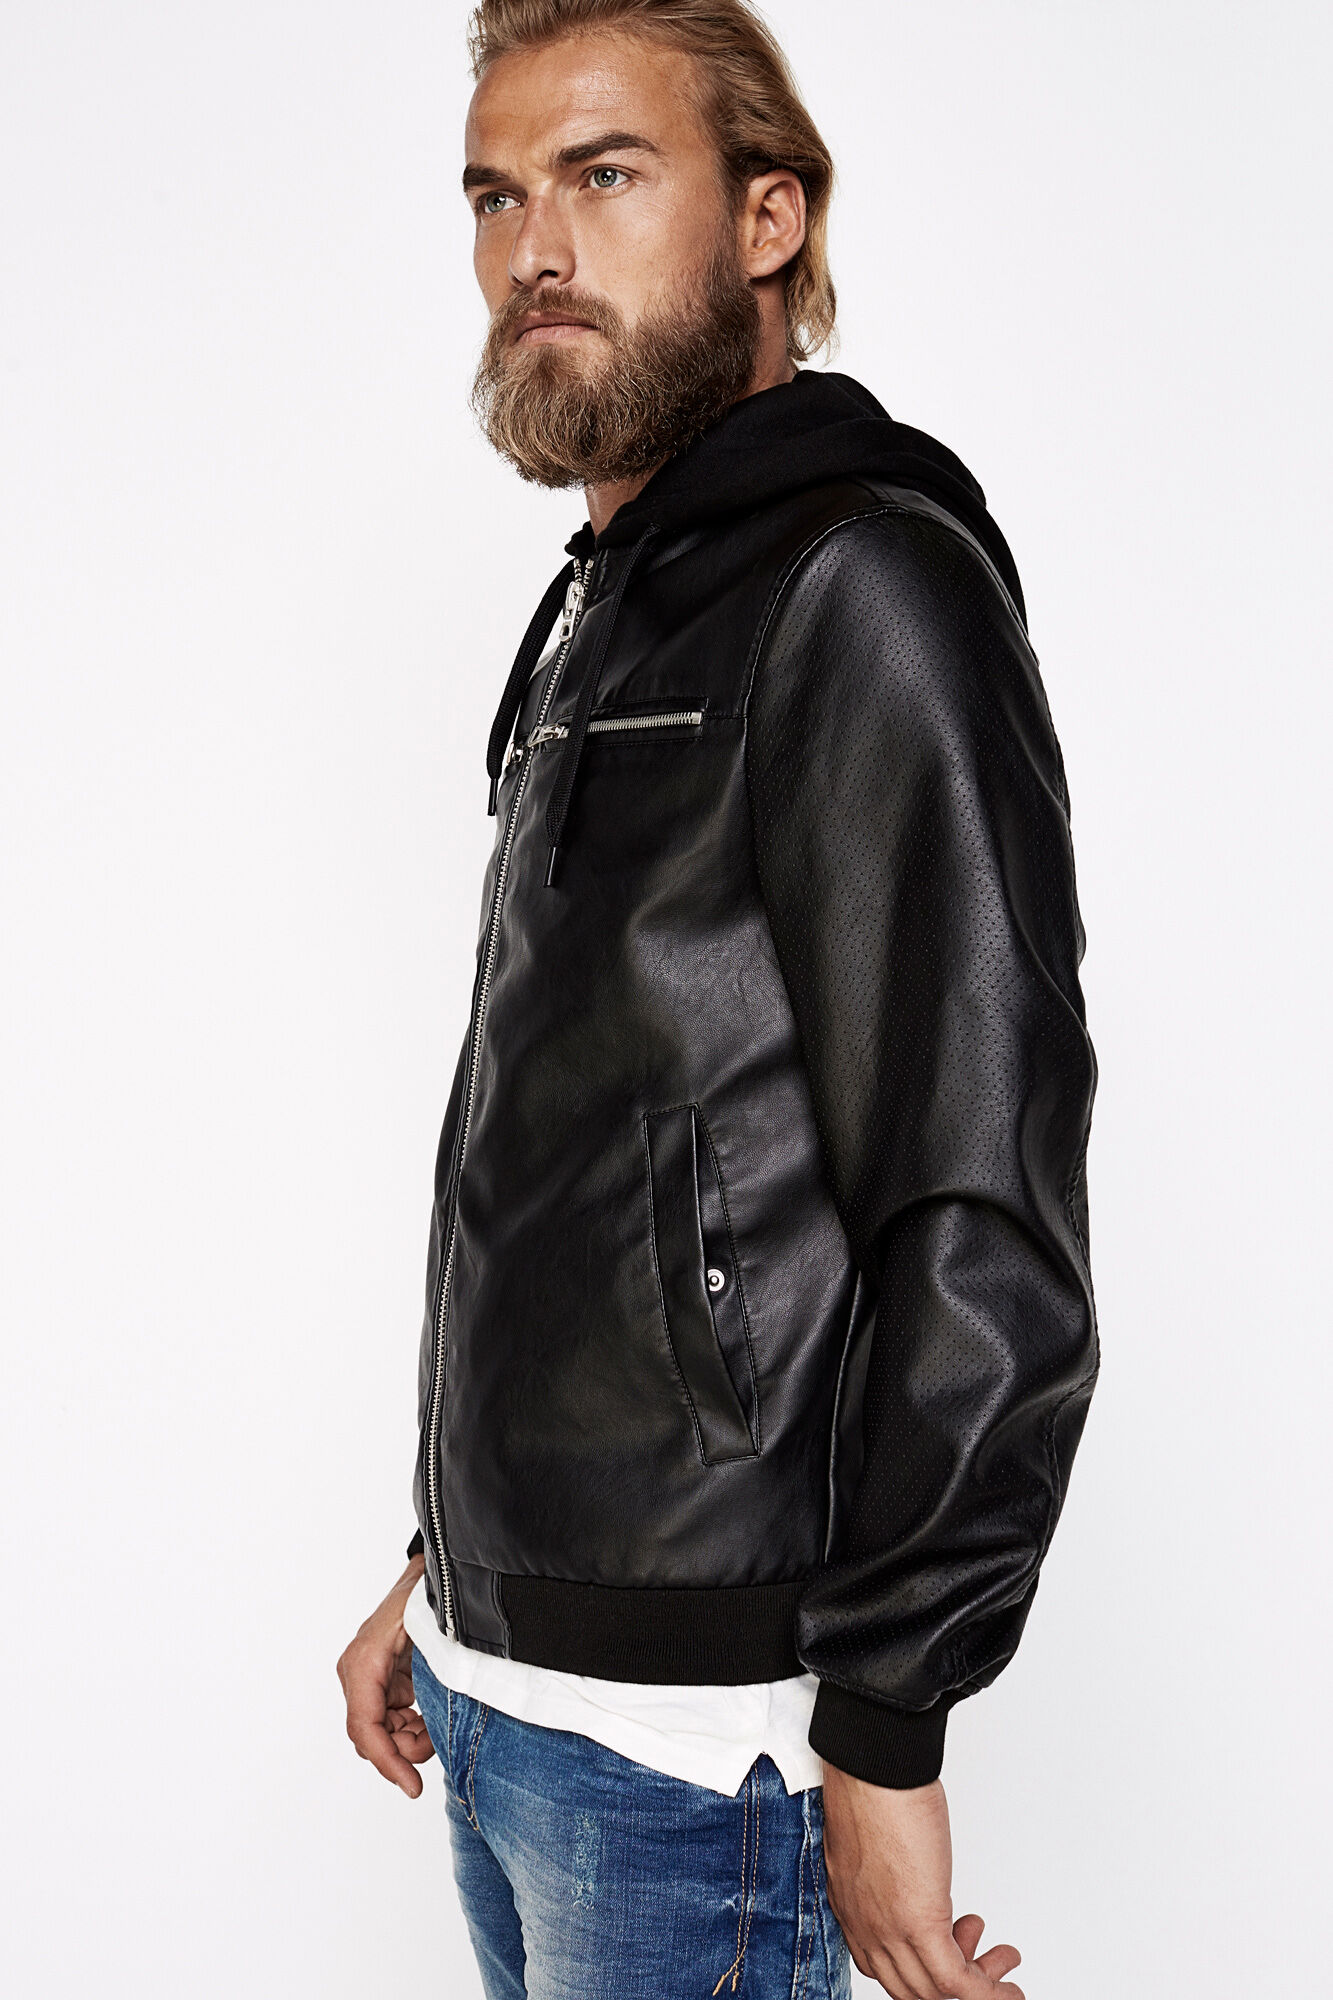 IMITATION LEATHER BOMBER JACKET WITH DETACHABLE HOOD | Bombers ...